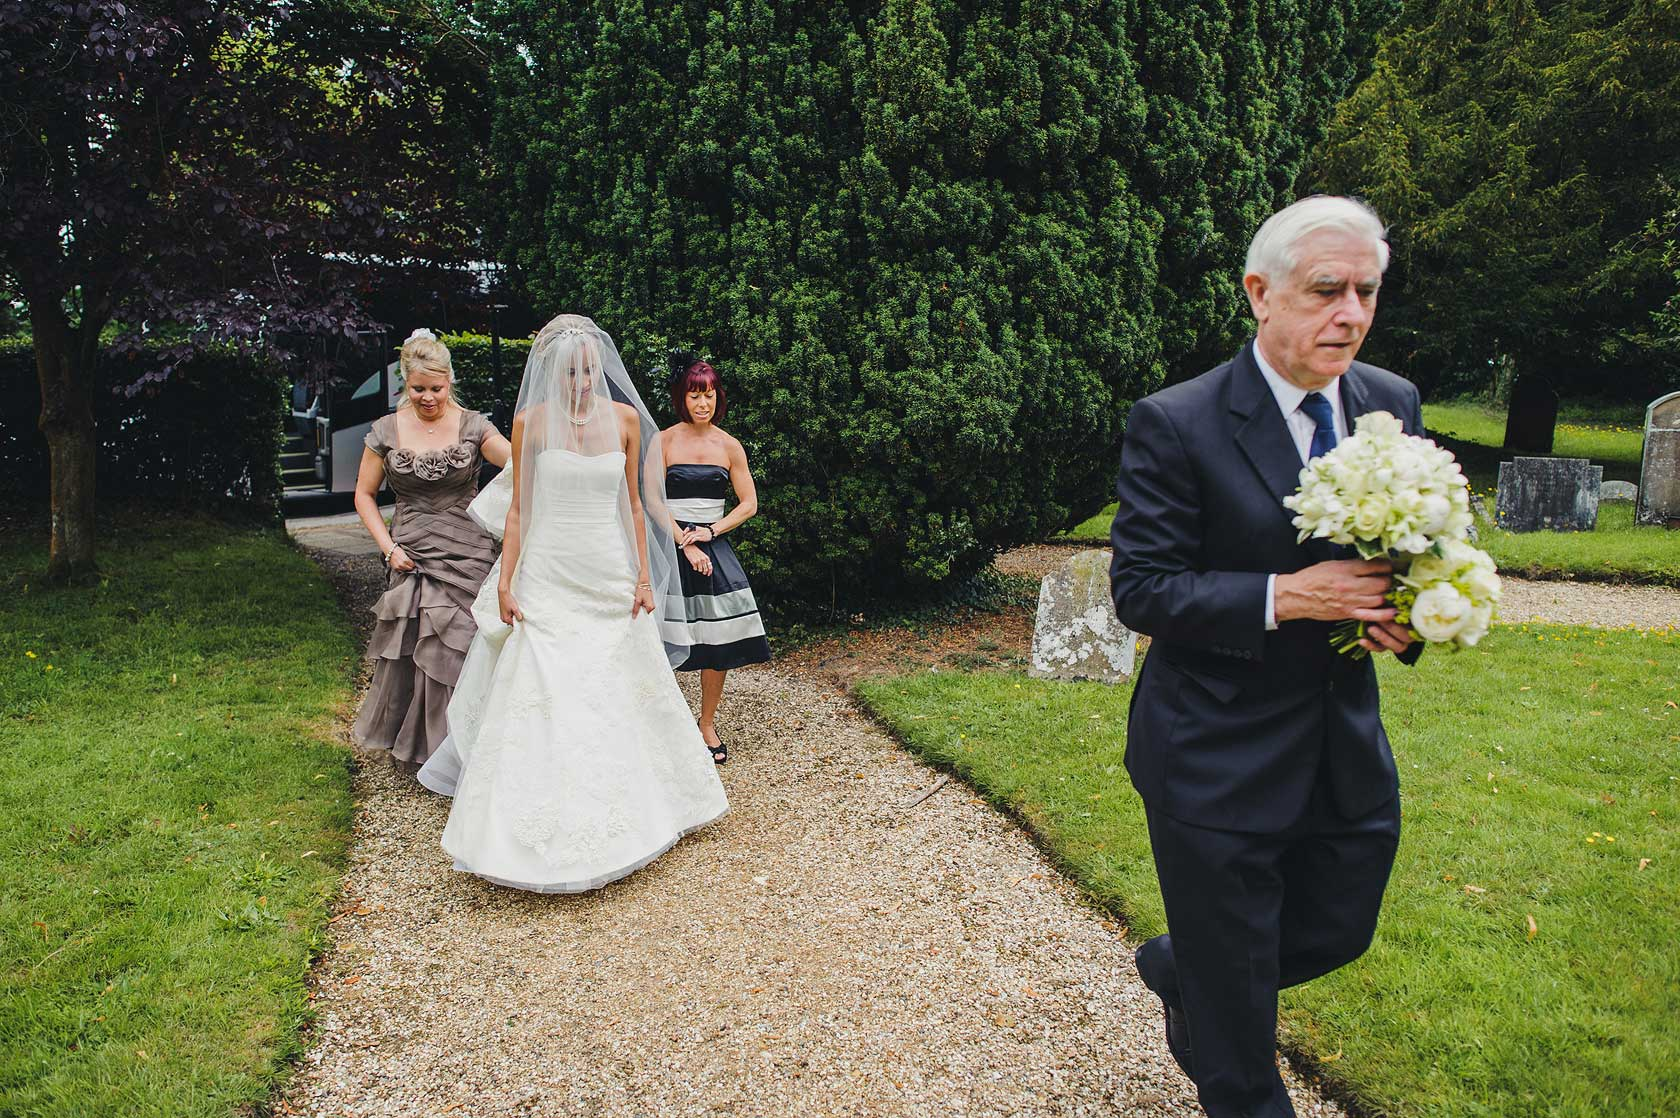 Reportage Wedding Photography at Highclere Castle